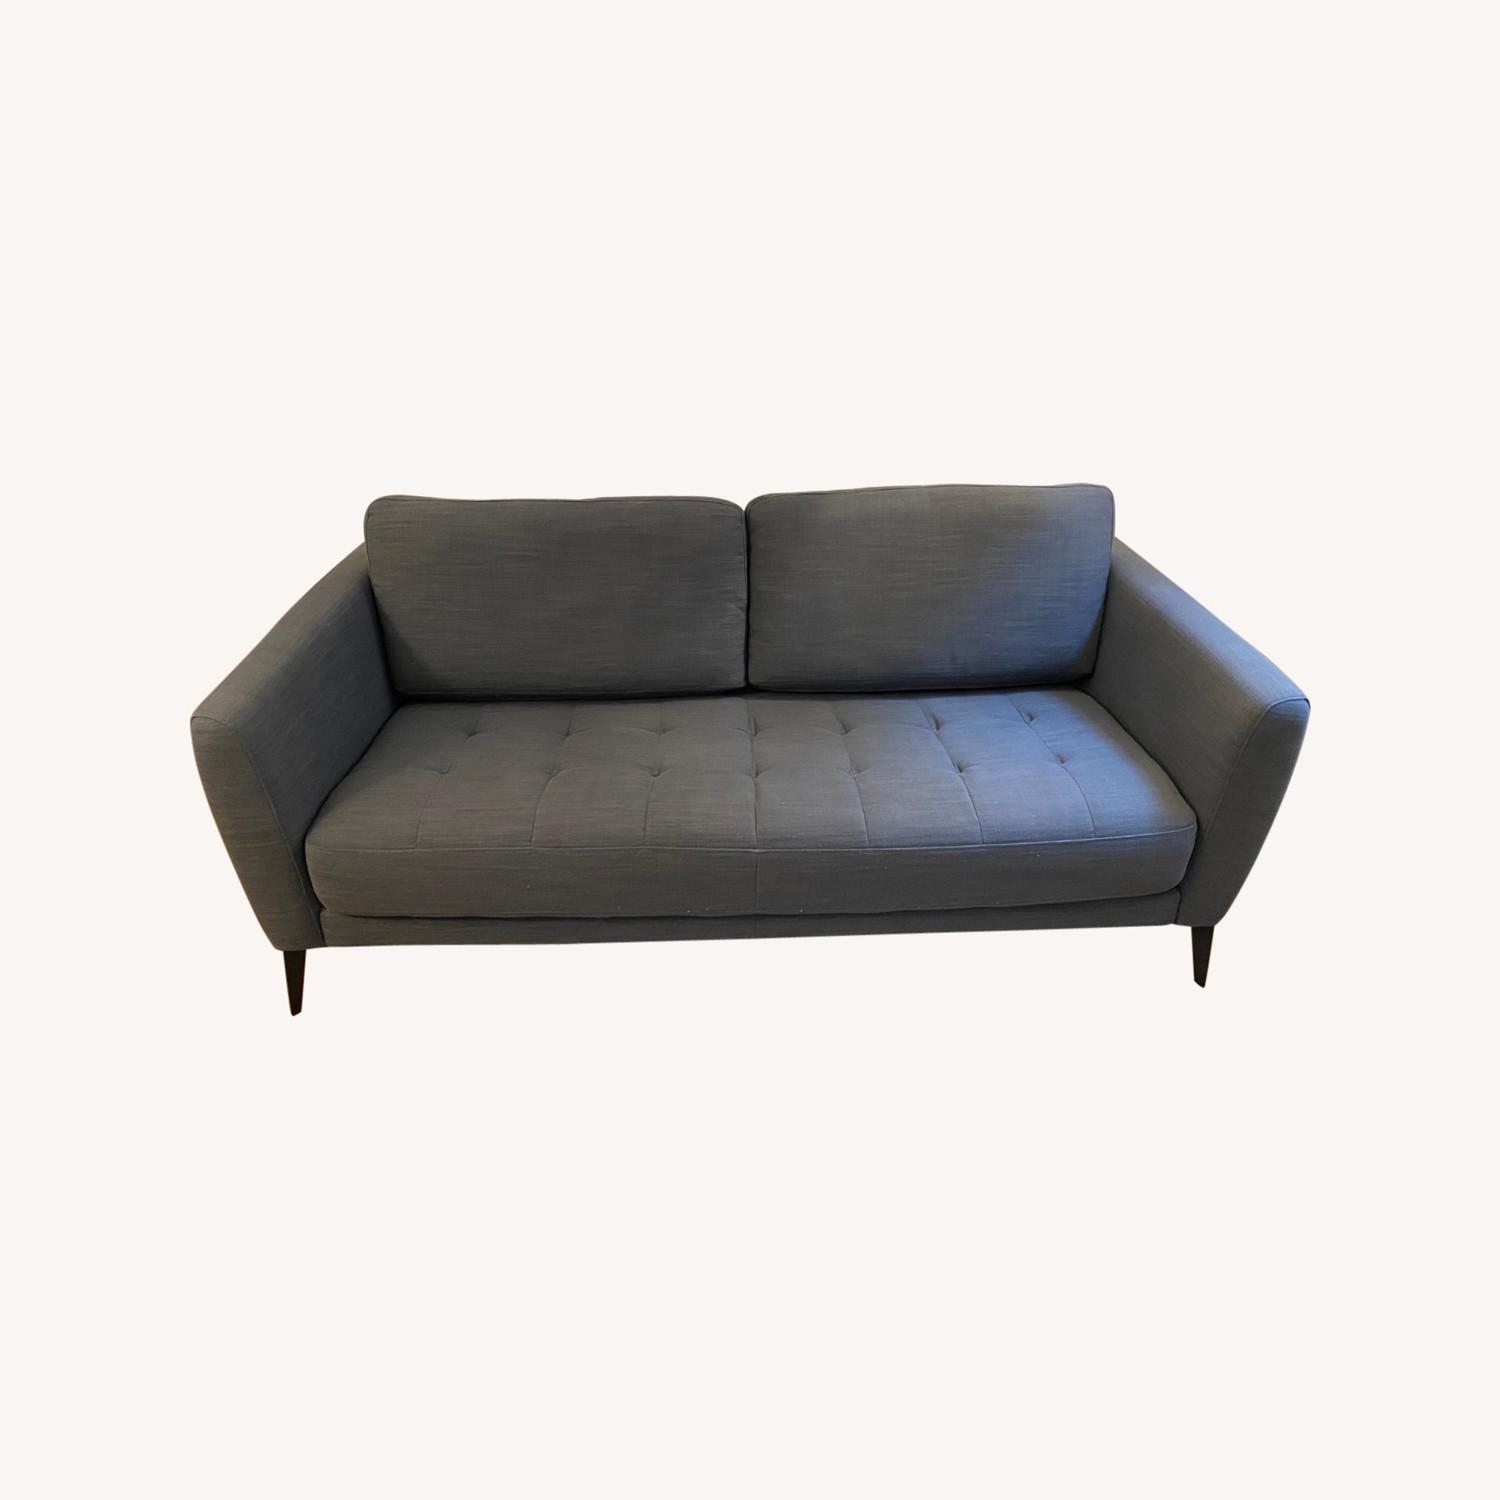 Macy's Tufted Modern Couch Sofa - image-0